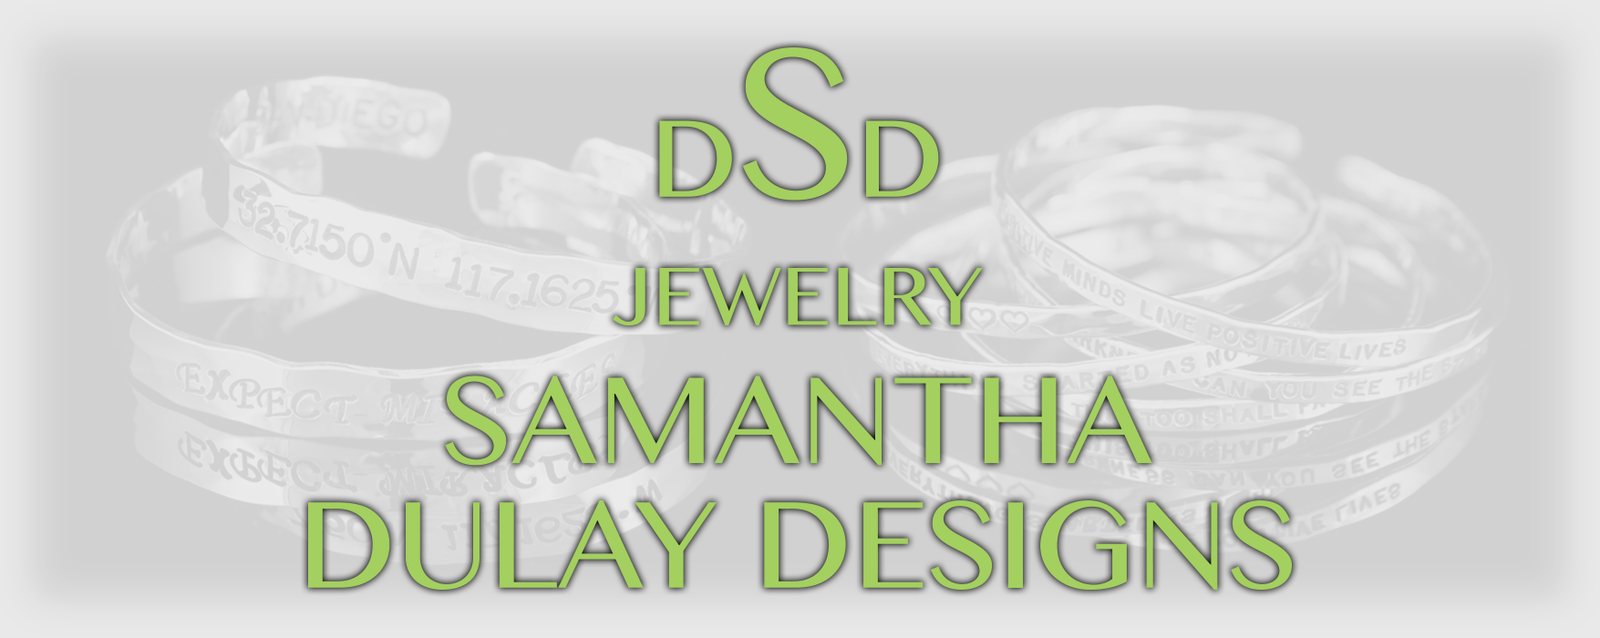 Samantha Dulay Designs (Jewelry)